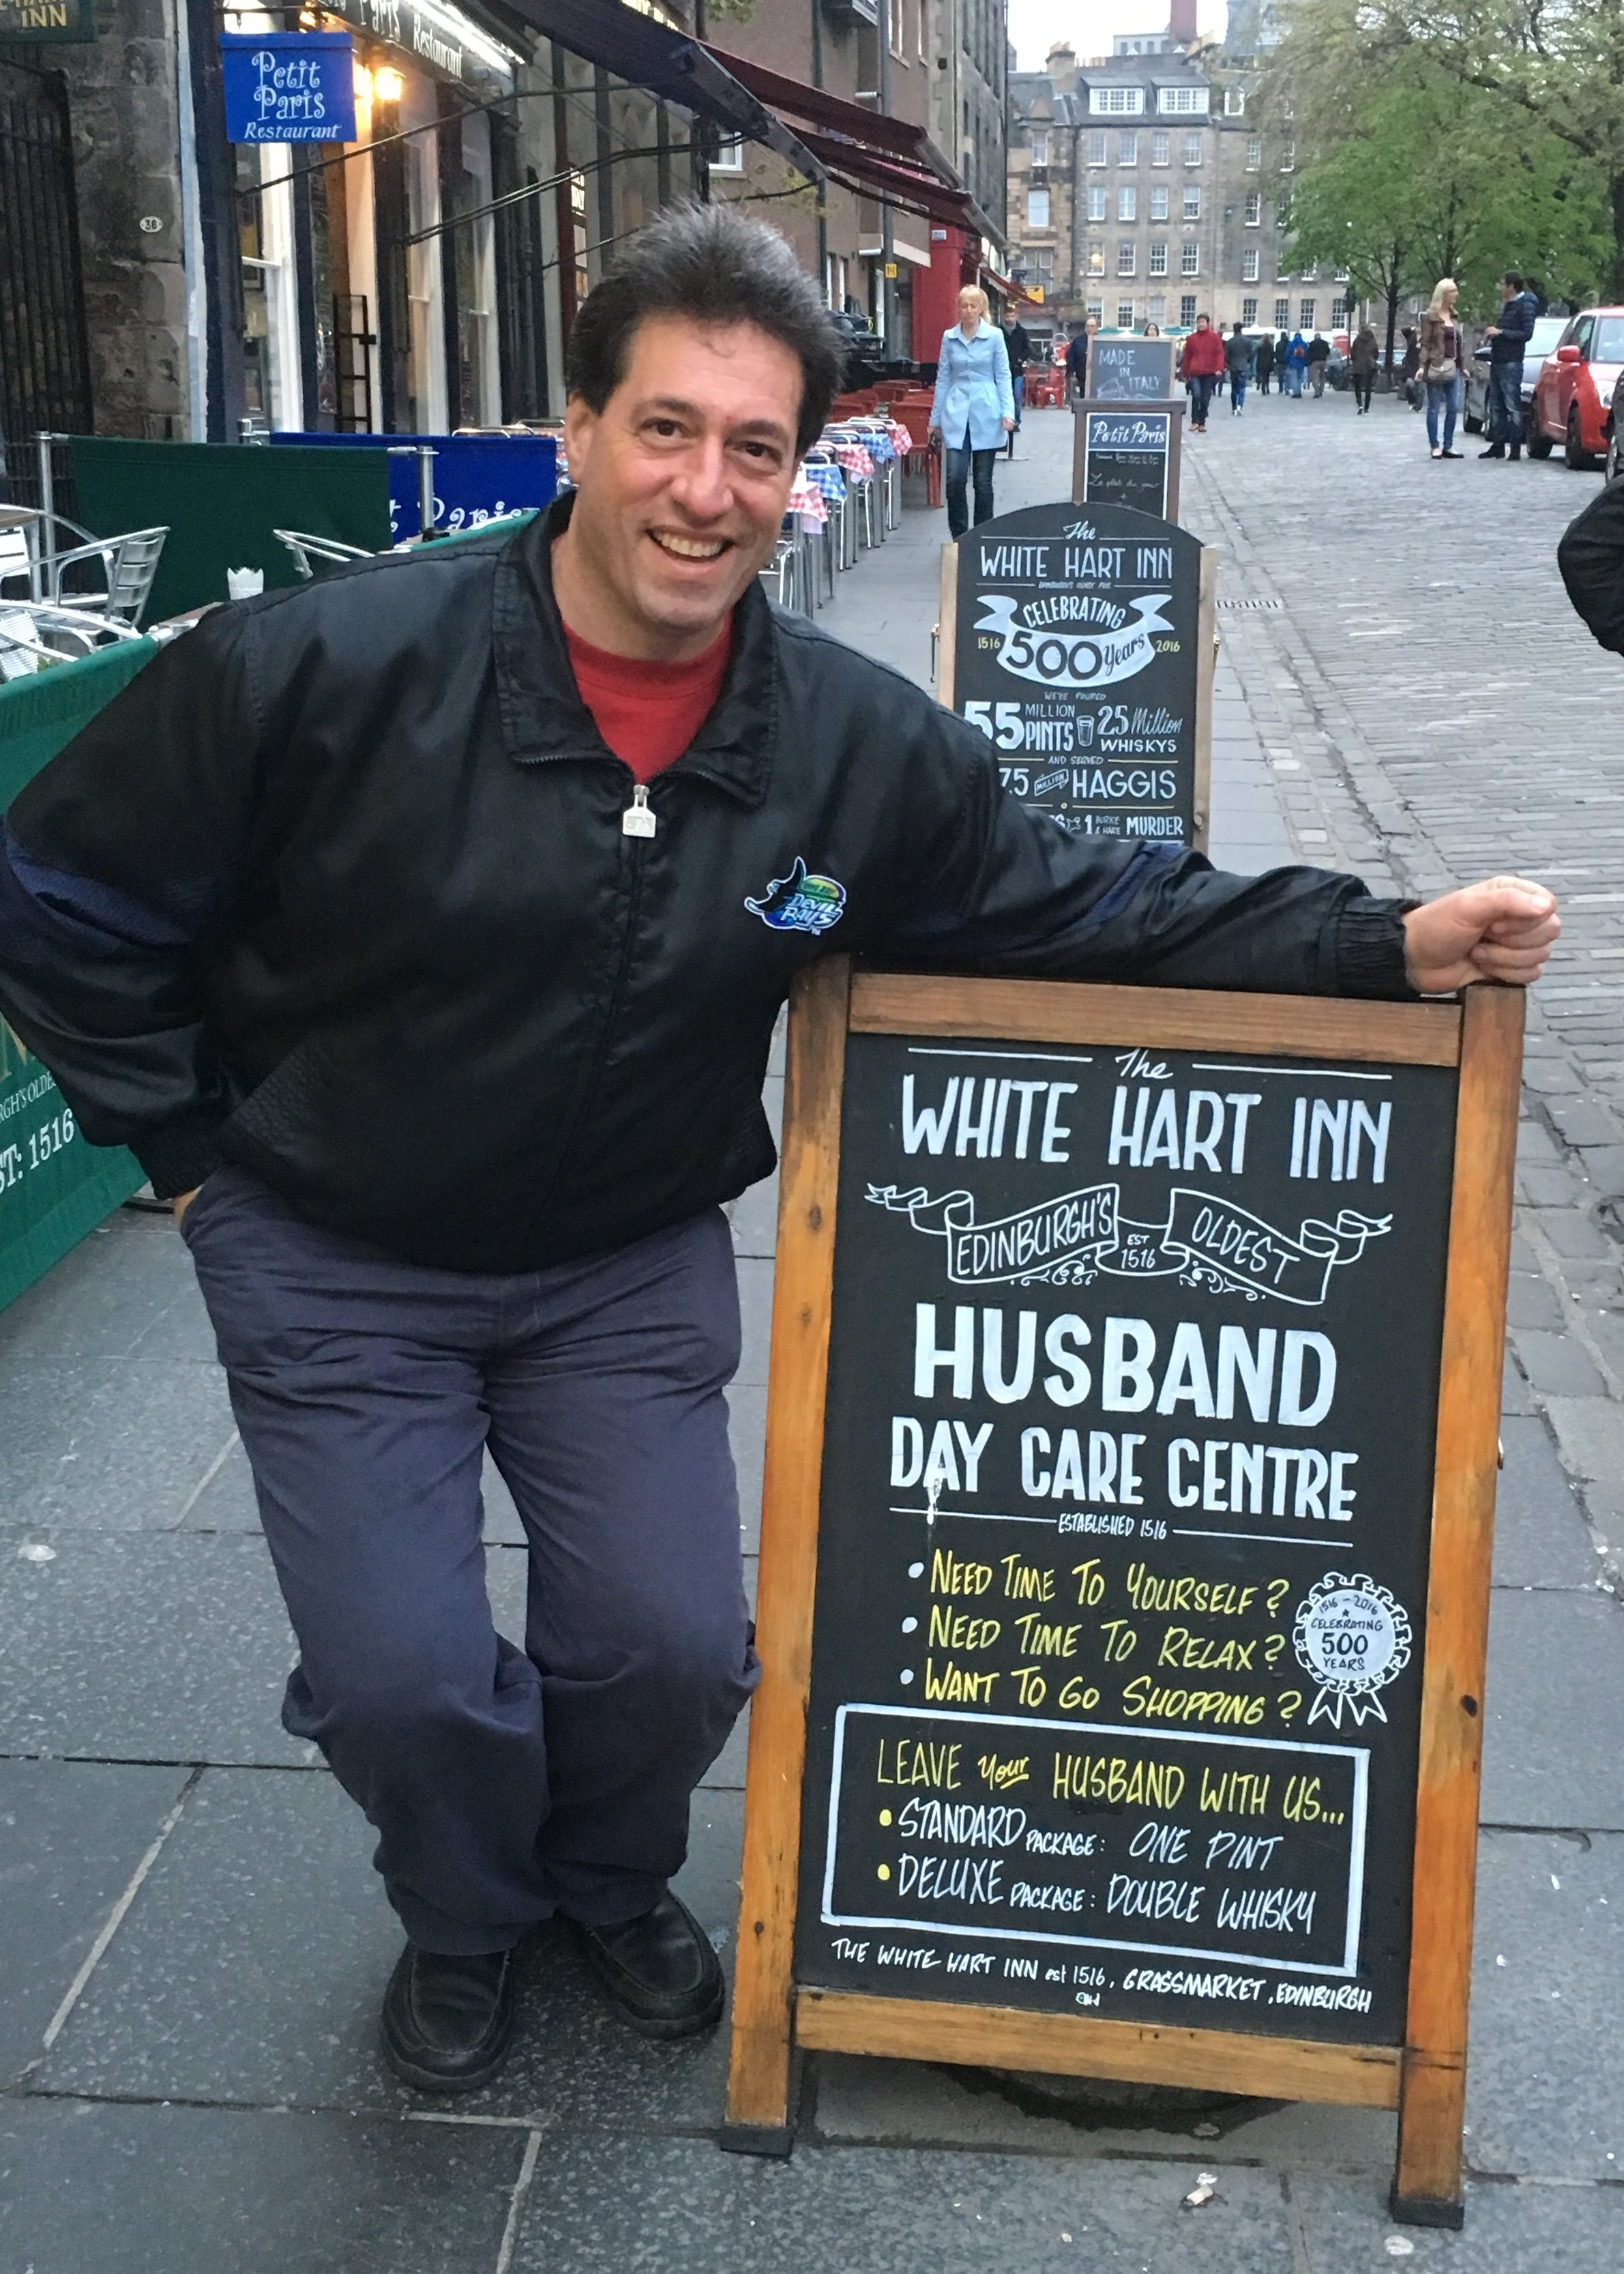 Husband Day Care in Grassmarket (Edinburgh) 2016